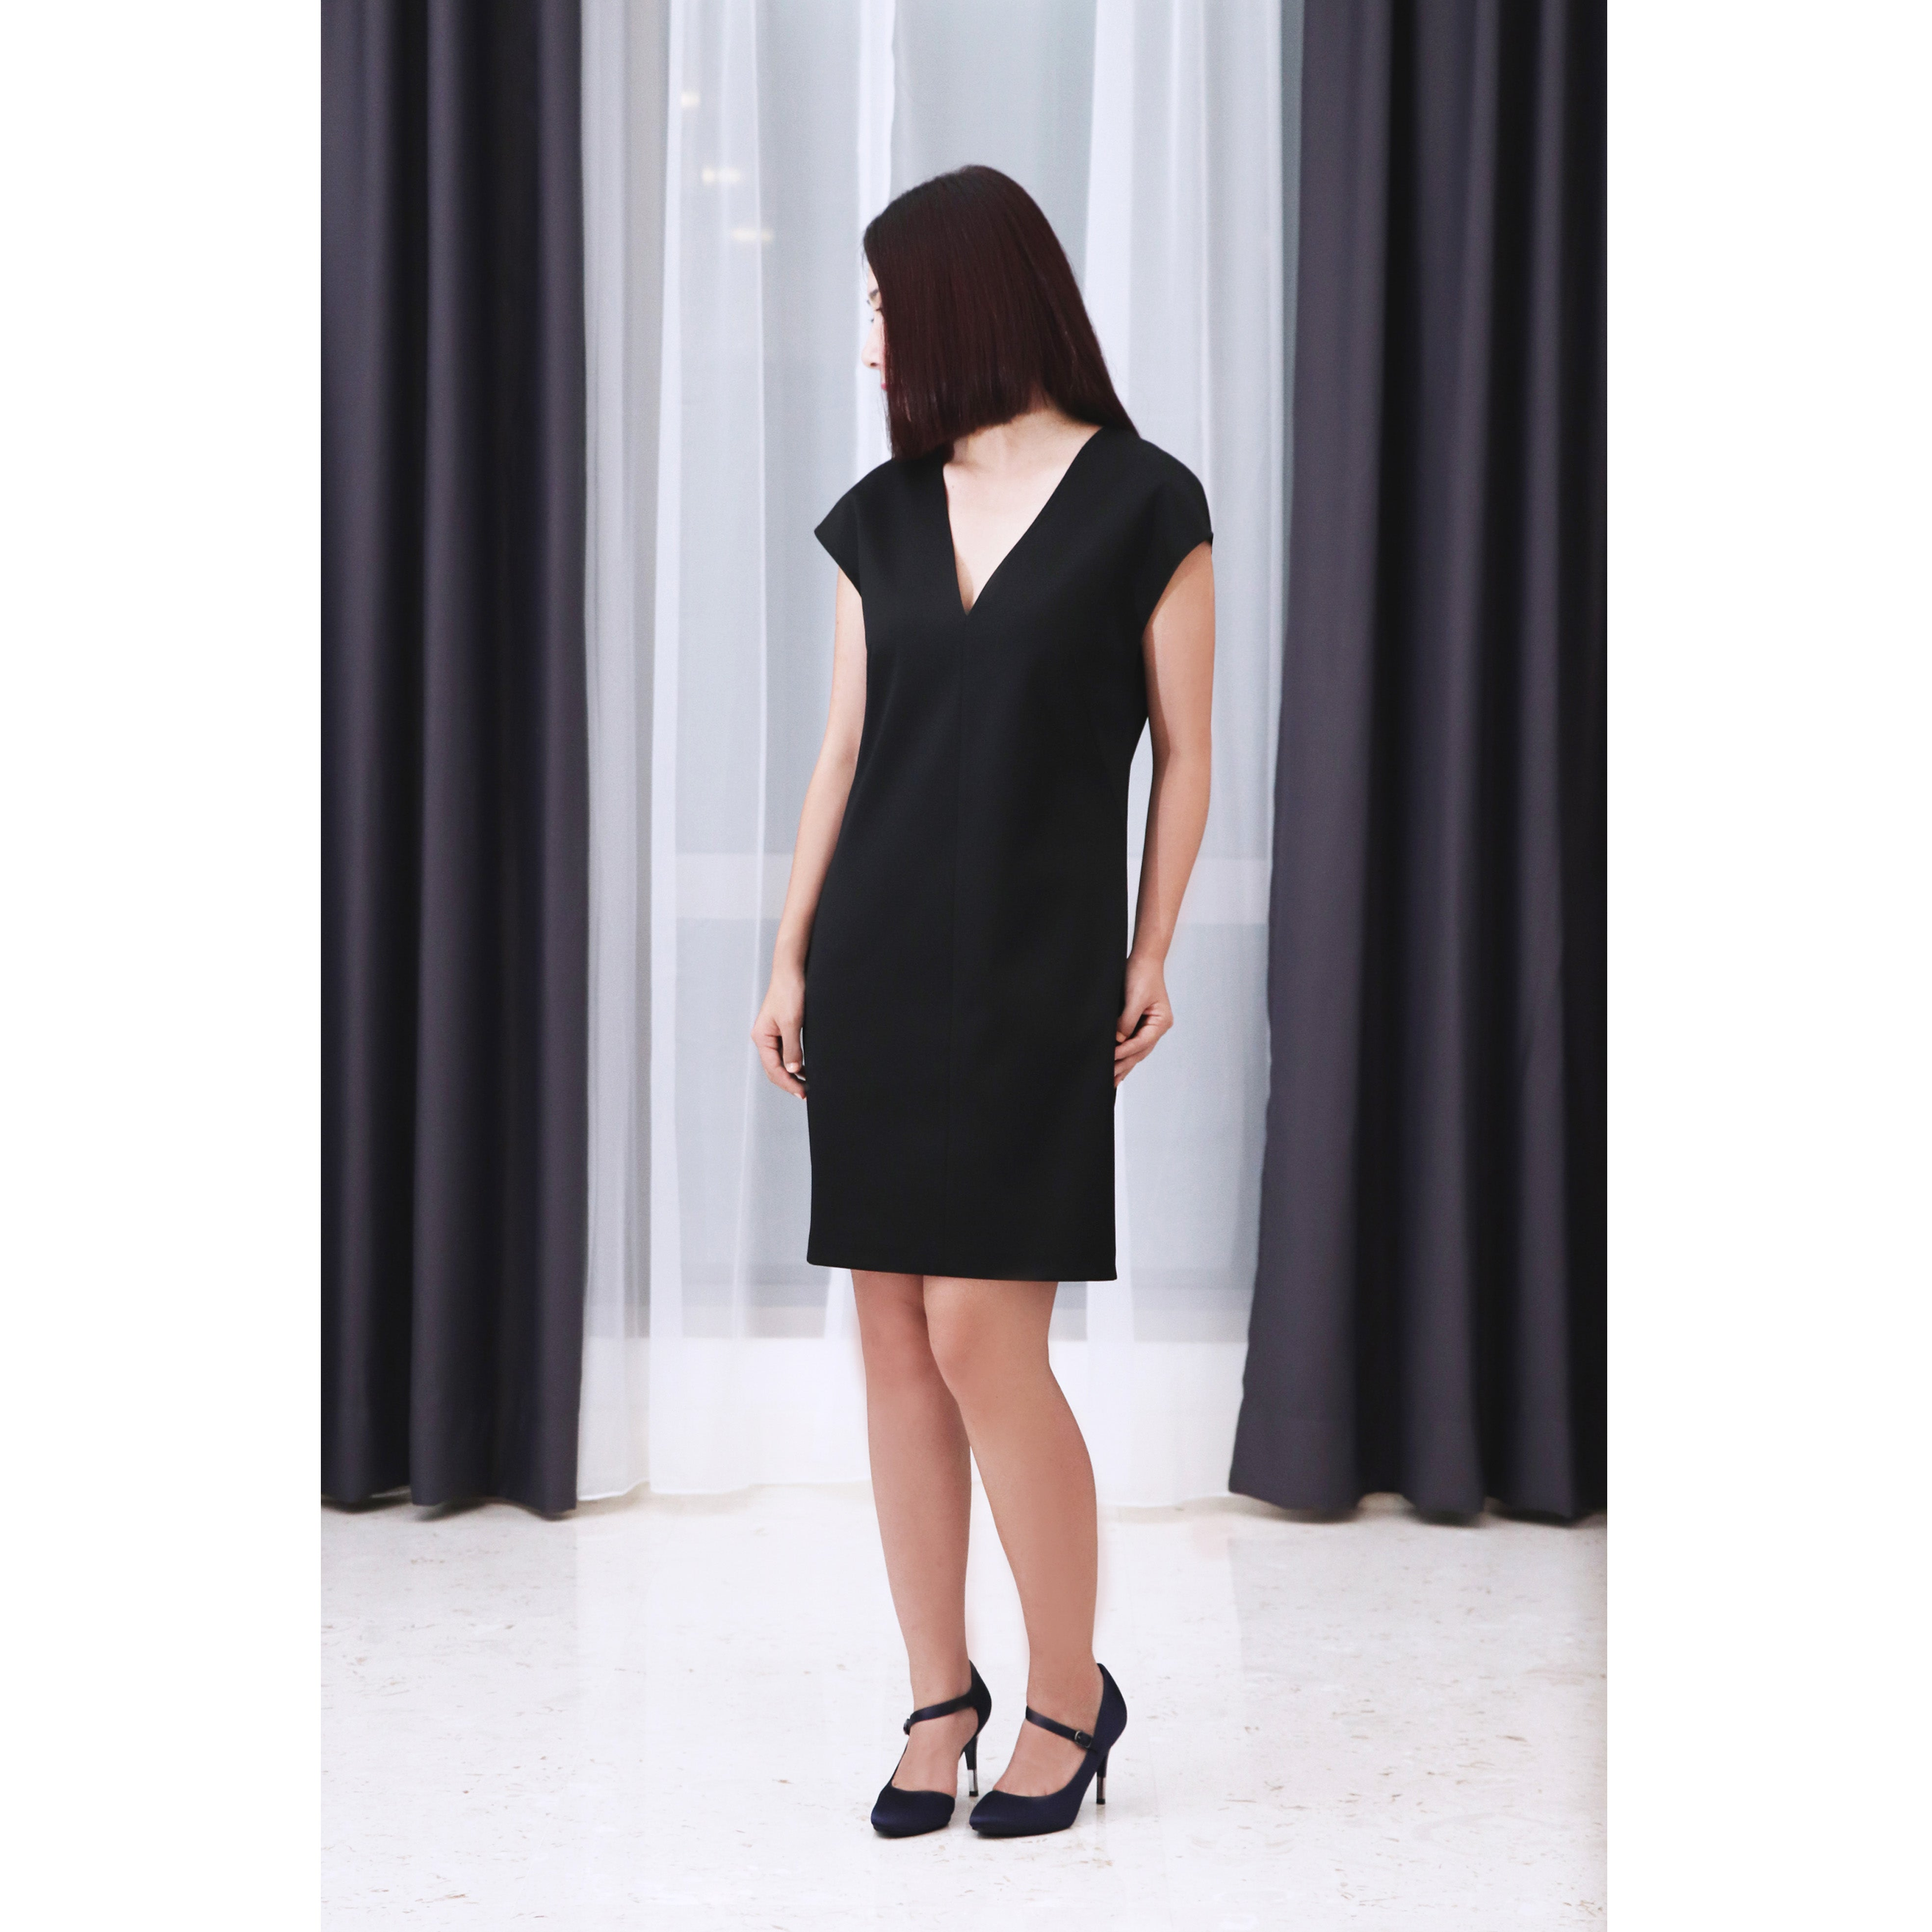 V neck and Deep V open back Shift Tunic Black Luxurious Satin Shift Tunic cocktail Dress